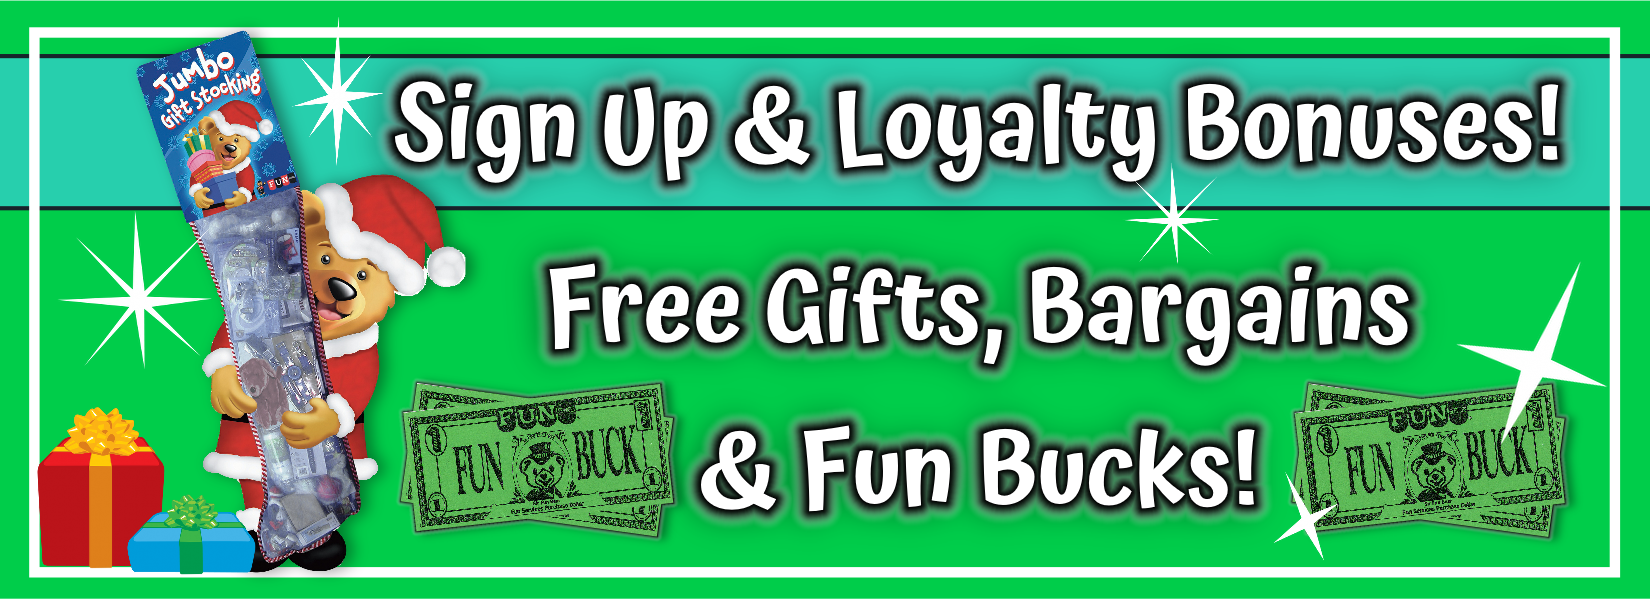 Sign Up Loyalty Bonus Free Gifts Bargains